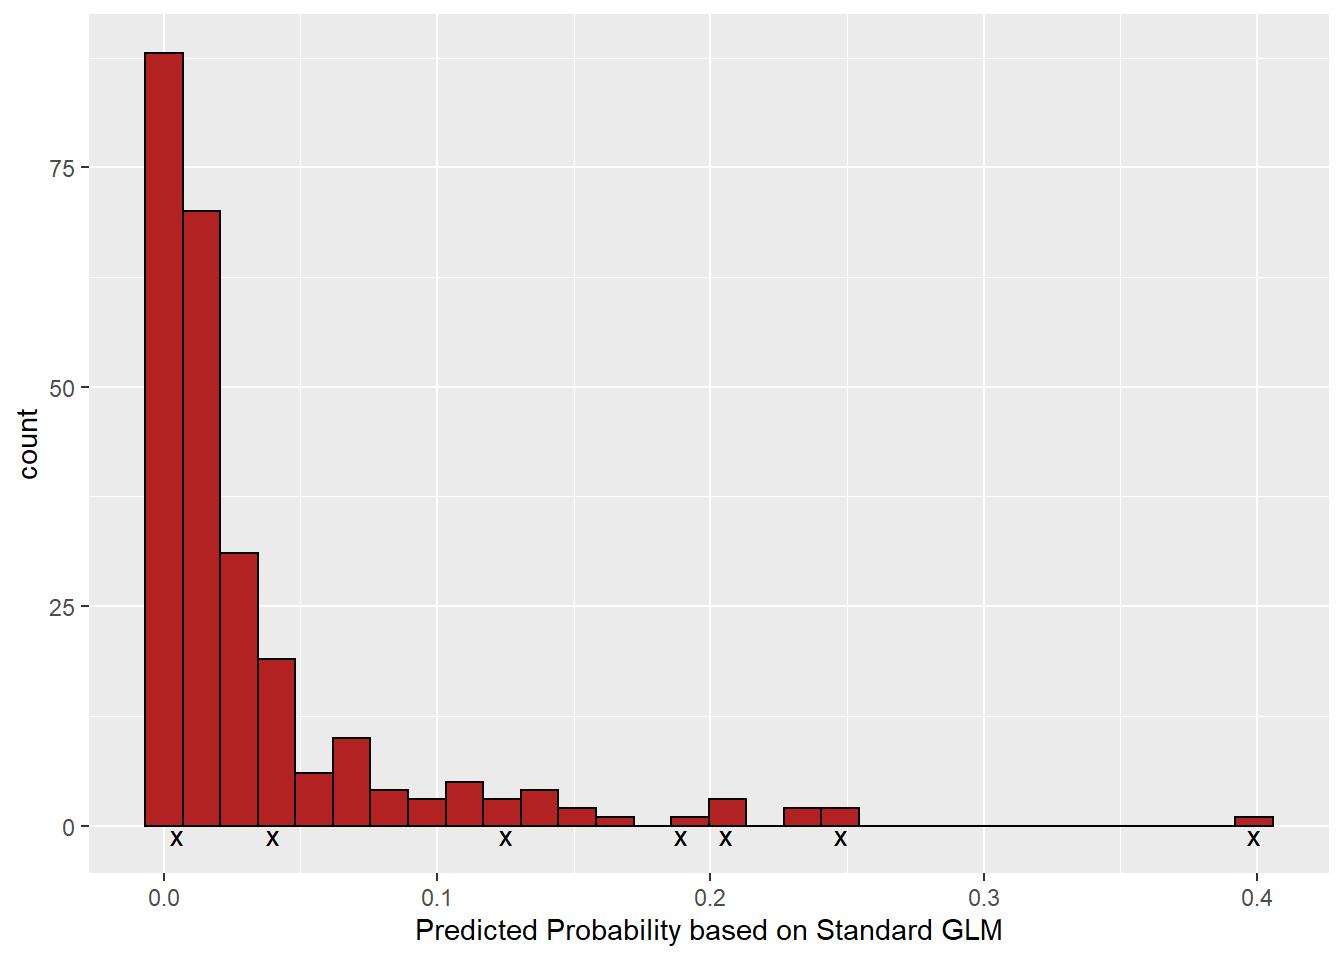 the distribution of probabilities calculated for the test set based on the glm fit to the training data